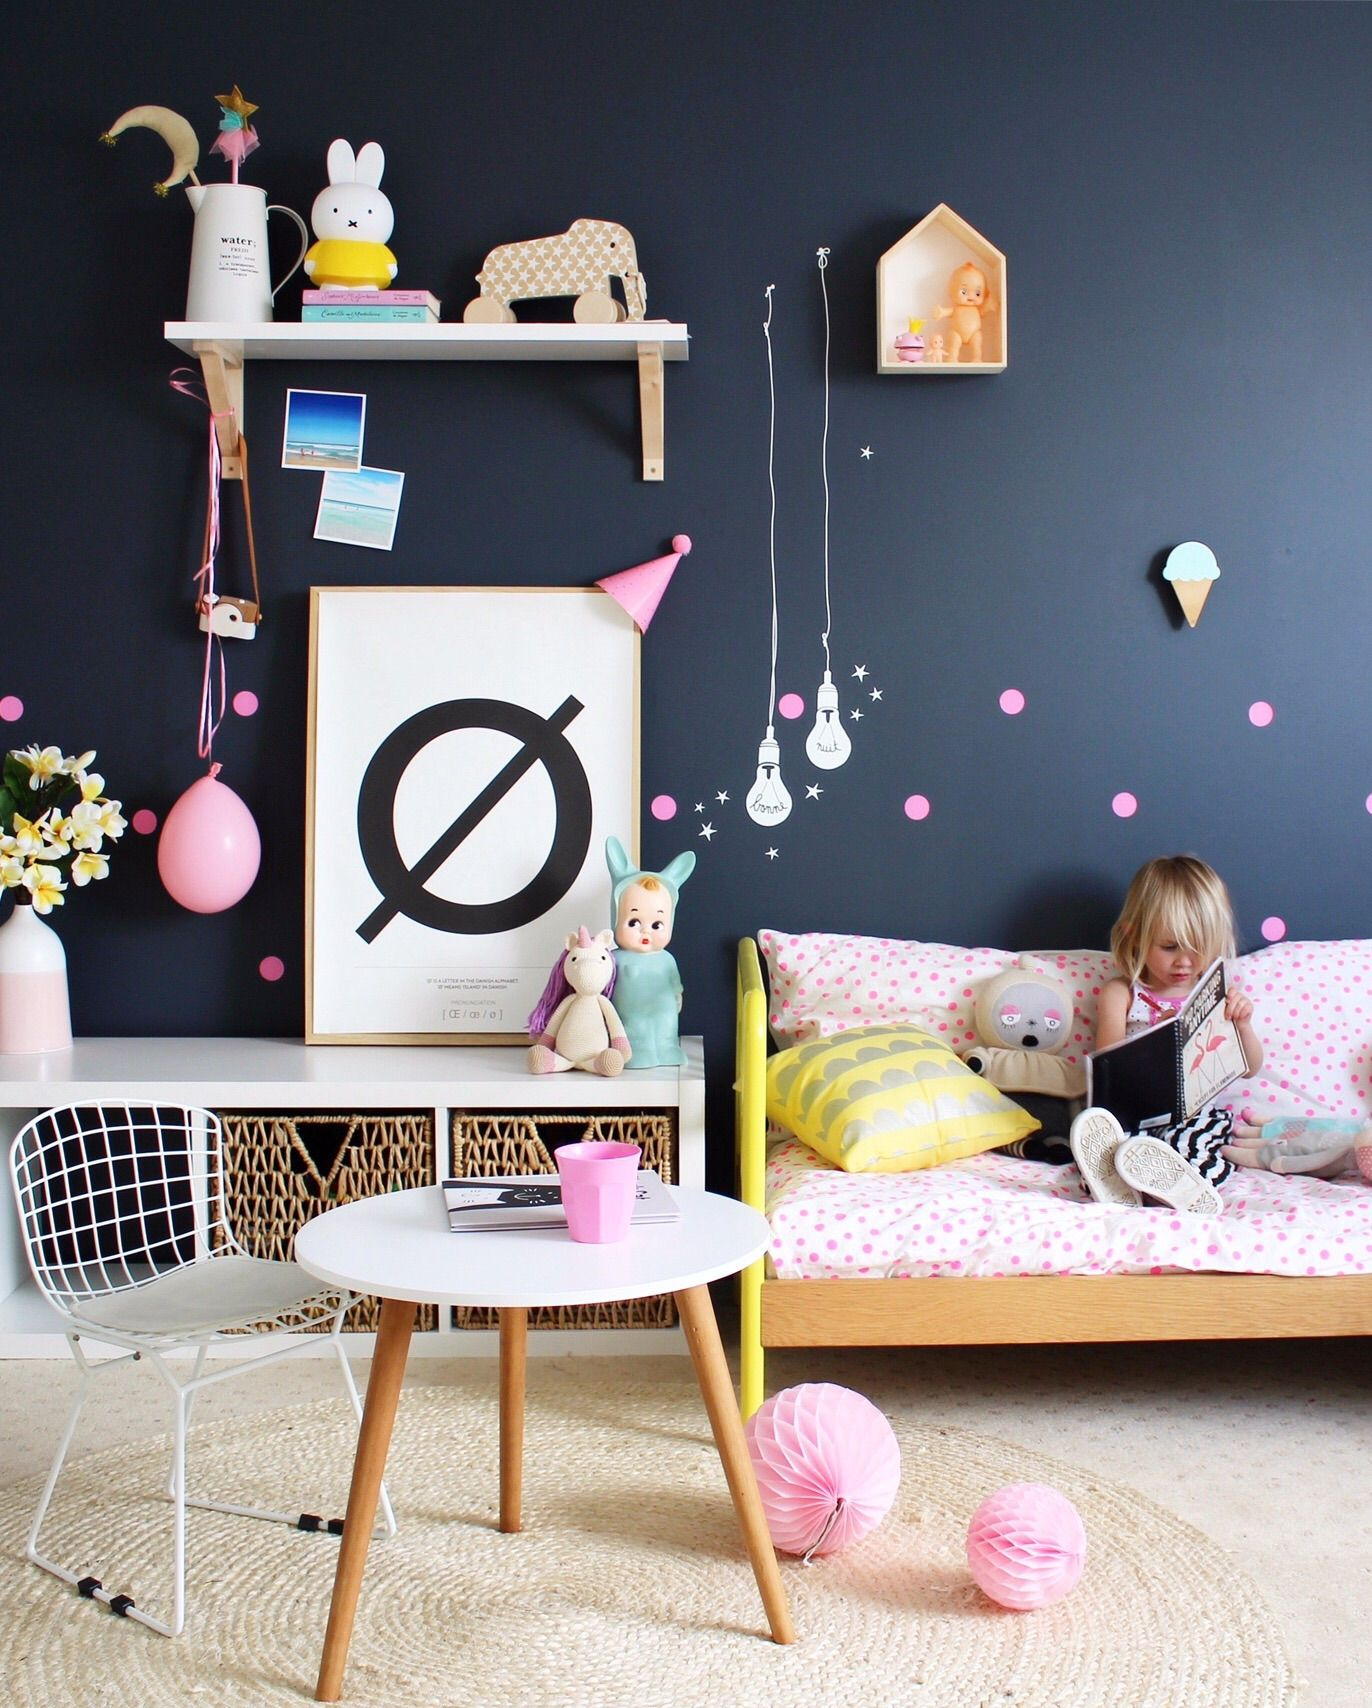 Yellow And Green Kids Room Ideas: How To Use A Simple Decal To Ignite